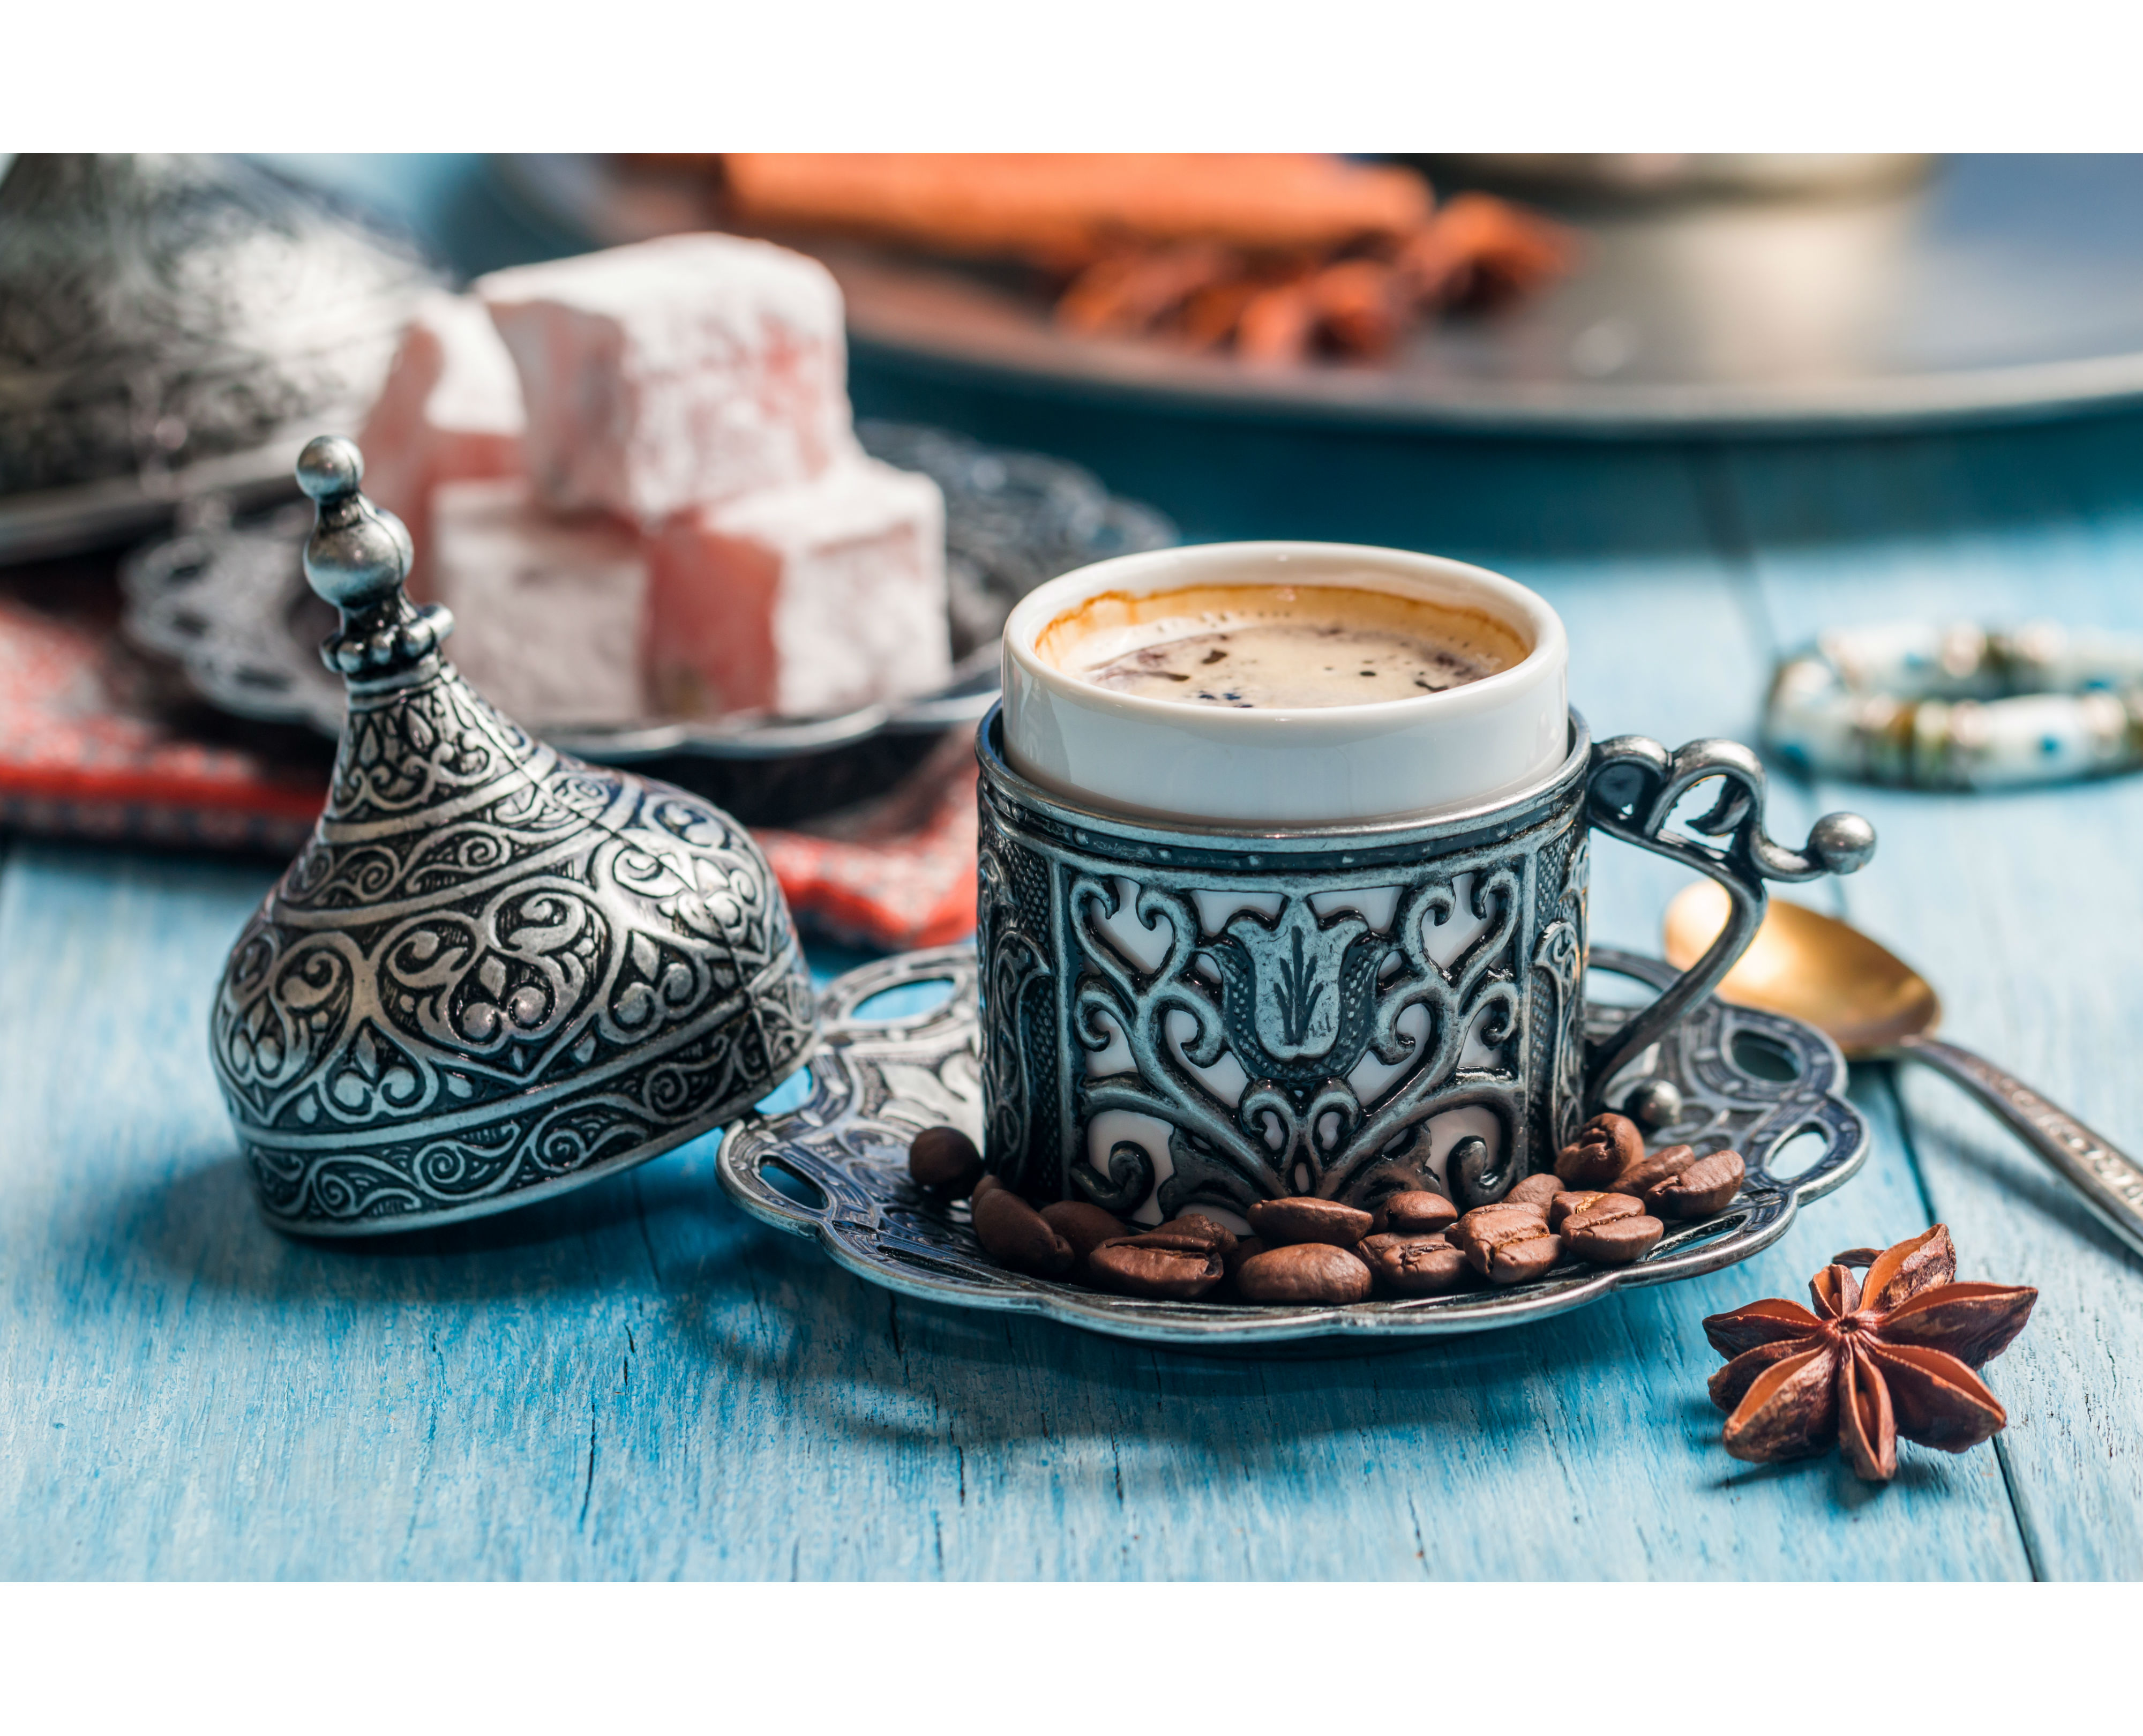 Tickets for Turkish Coffee Trail: Walking Tour with Coffee Making Course & Tasting